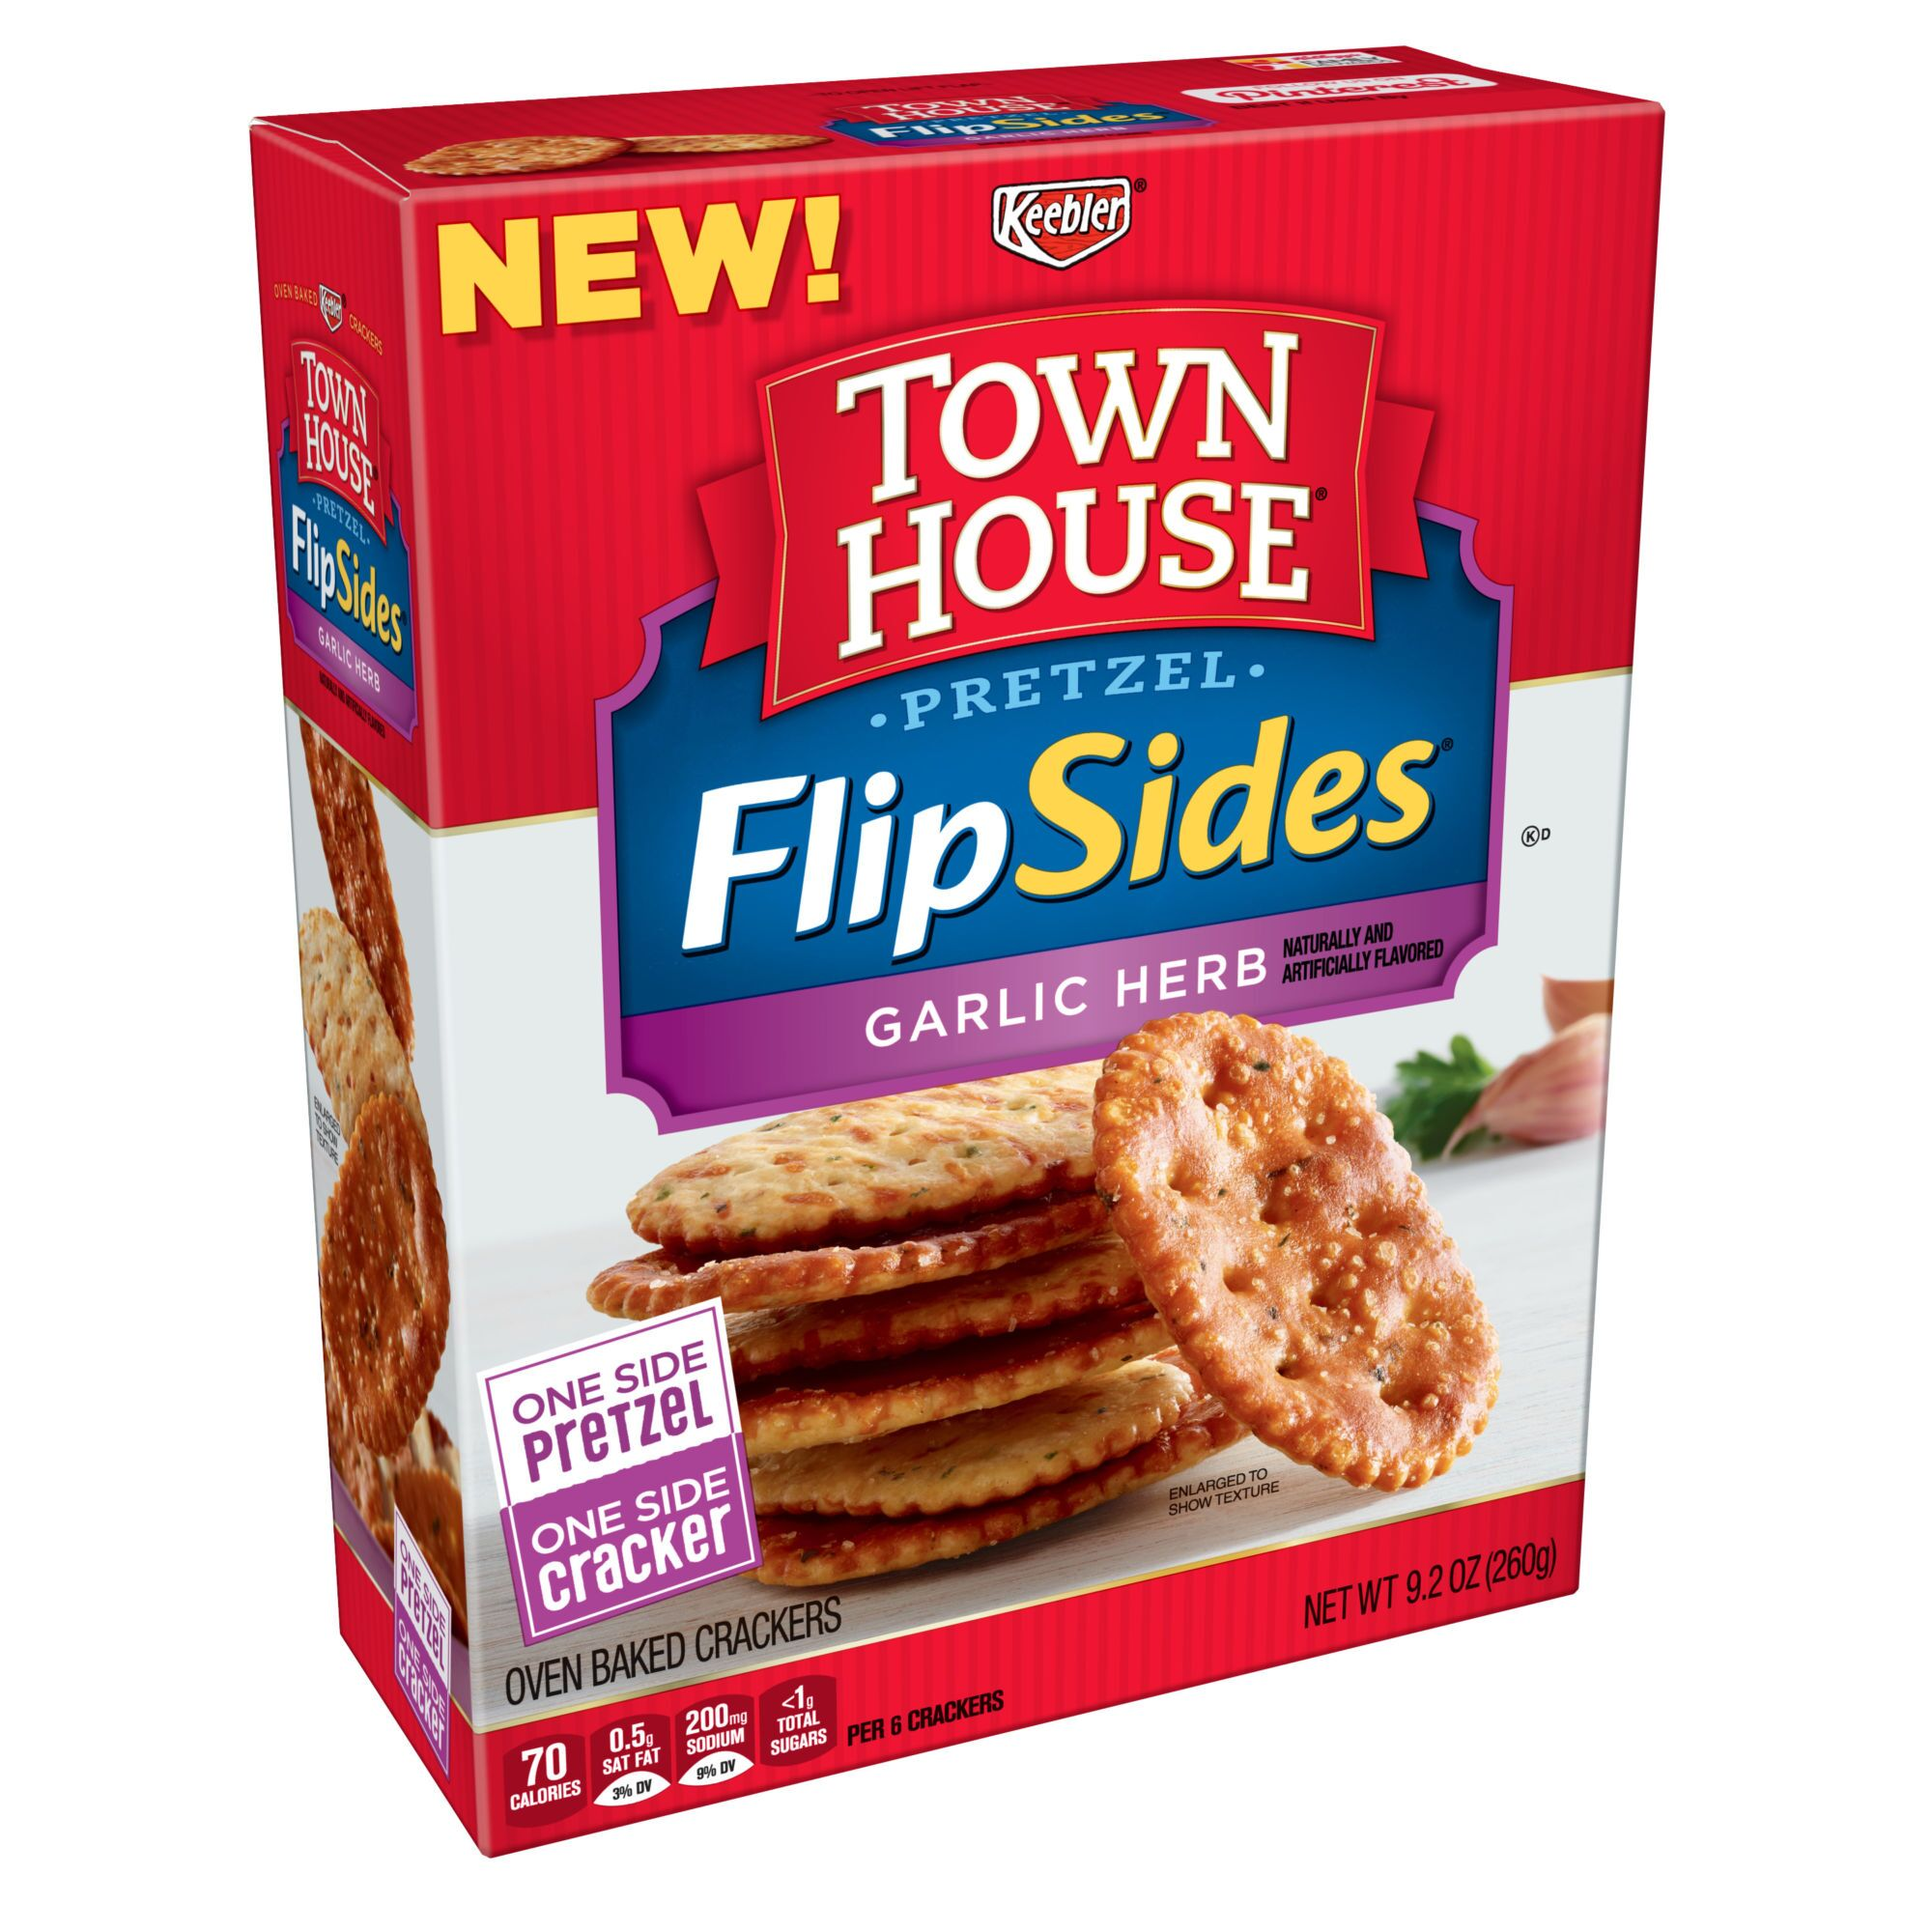 Town House Garlic Herb Flipsides: Bold flavor that goes with everything